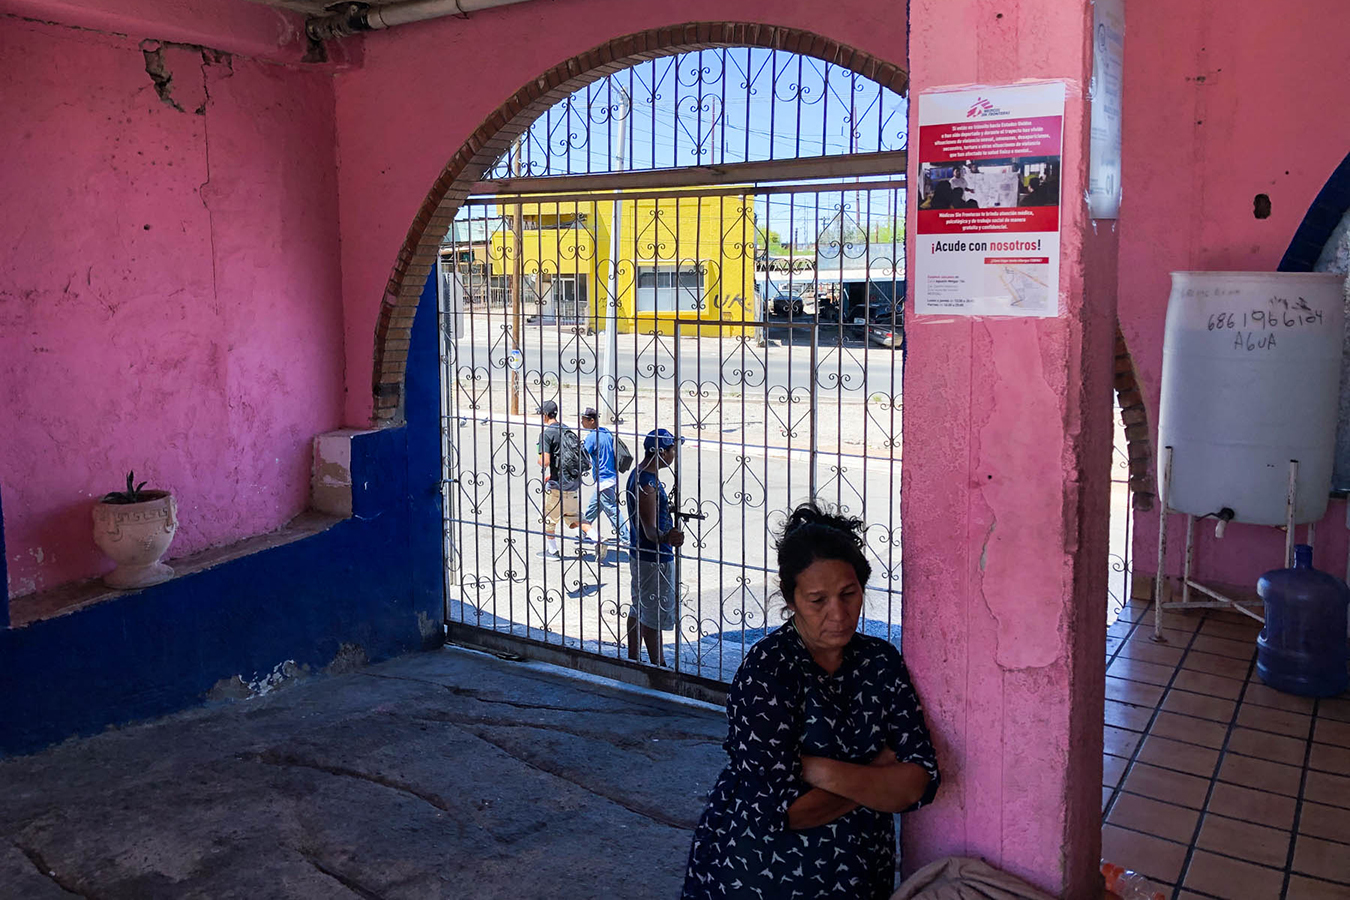 Kff Mexico Heat And Violence Pose Twin Threats For Asylum Seekers